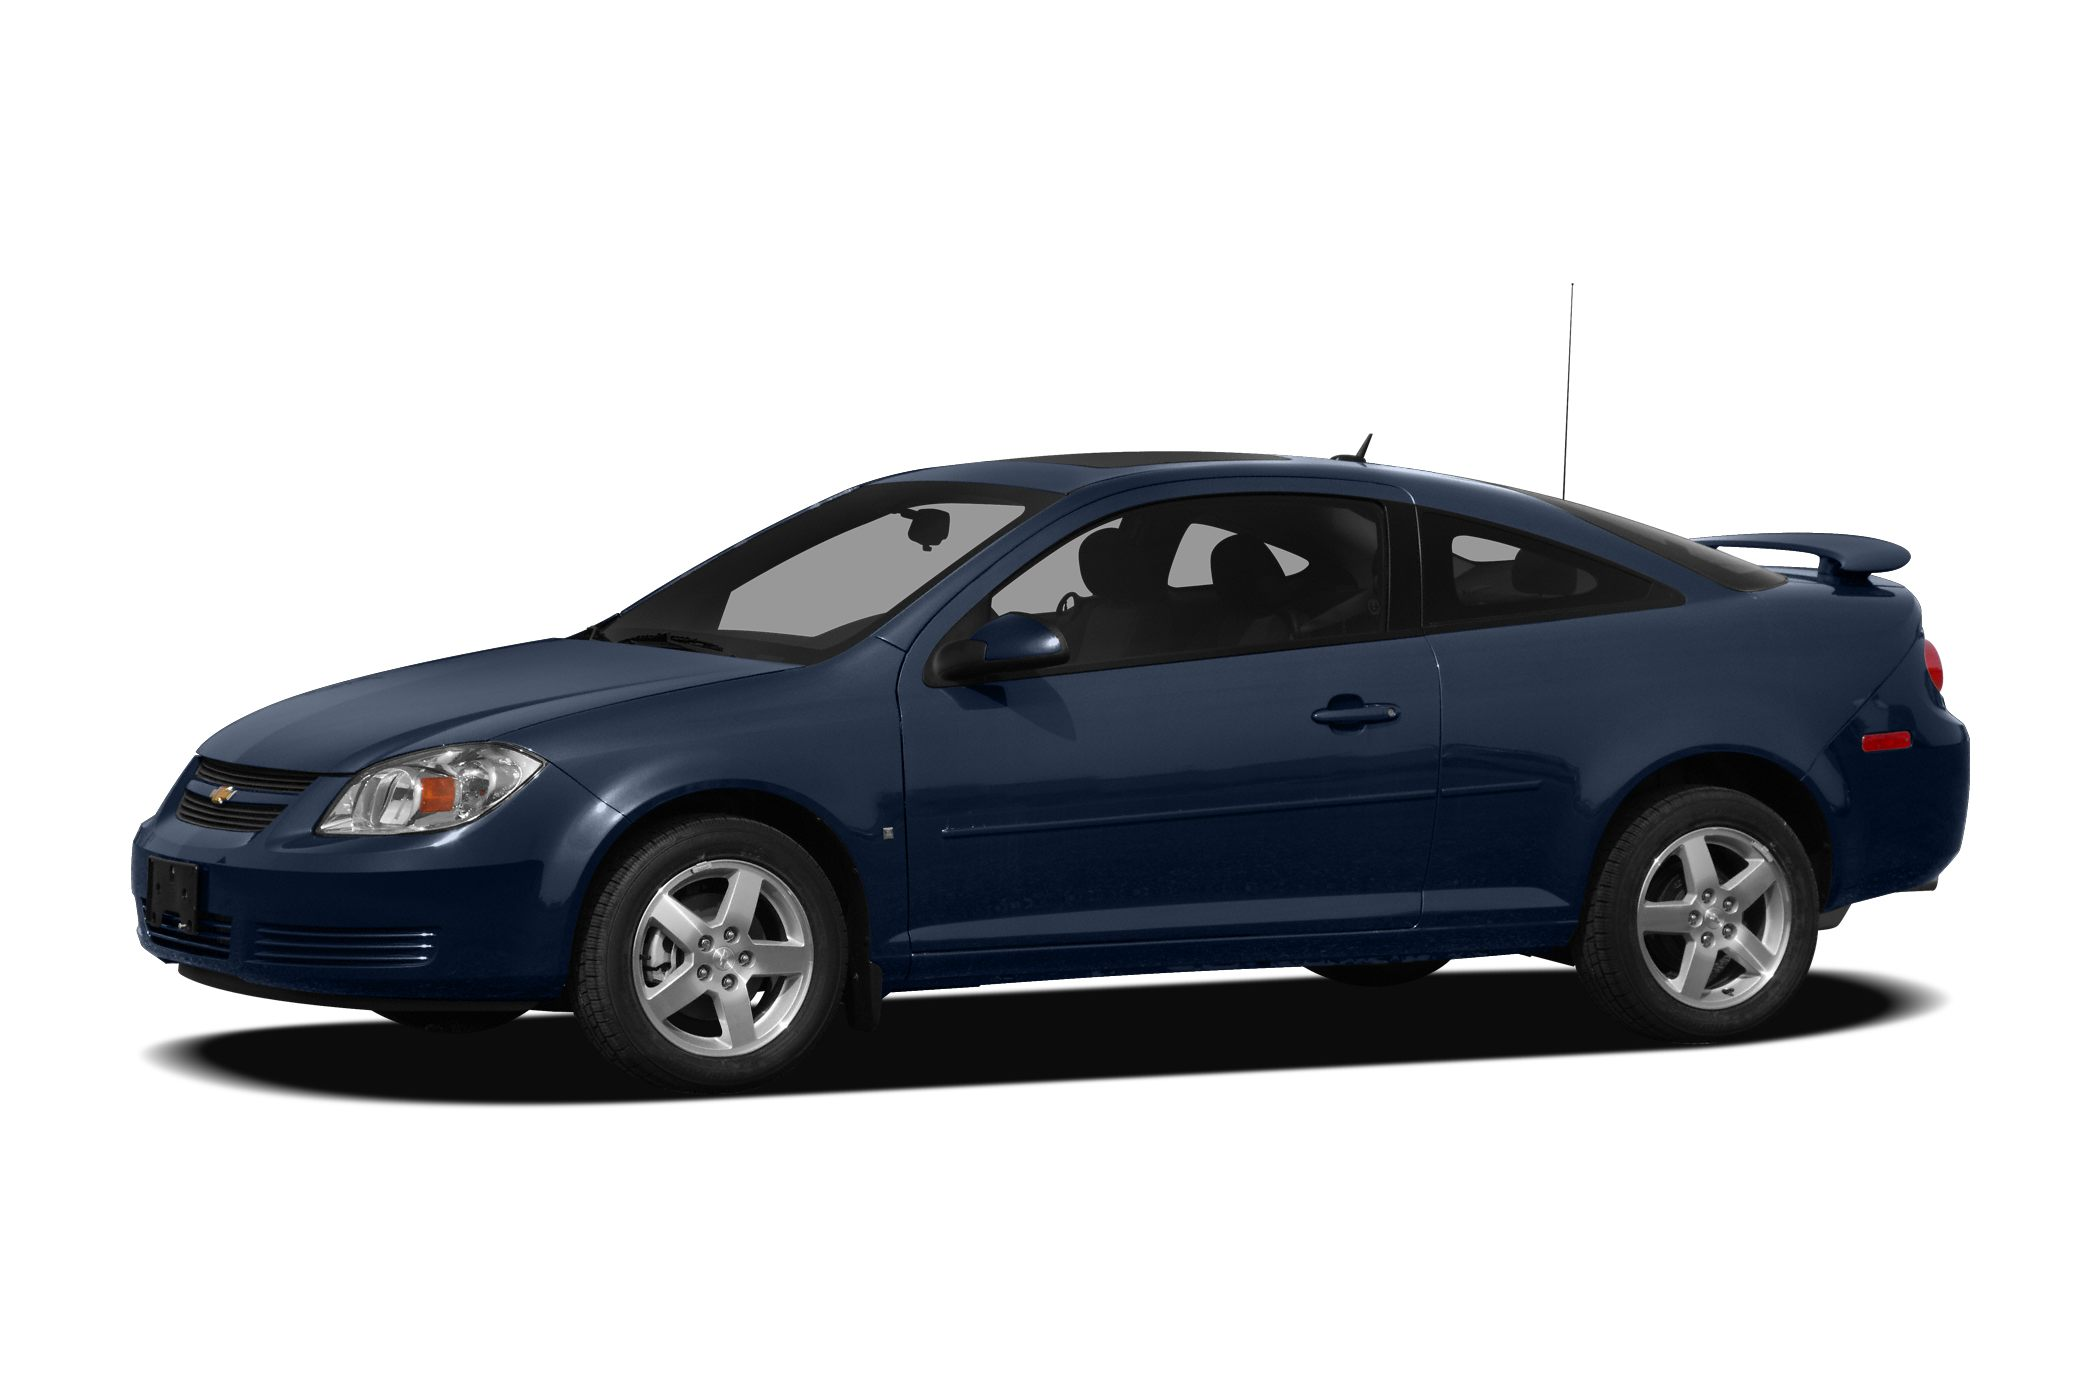 2010 Chevrolet Cobalt LS Sedan for sale in Richardson for $9,950 with 29,950 miles.